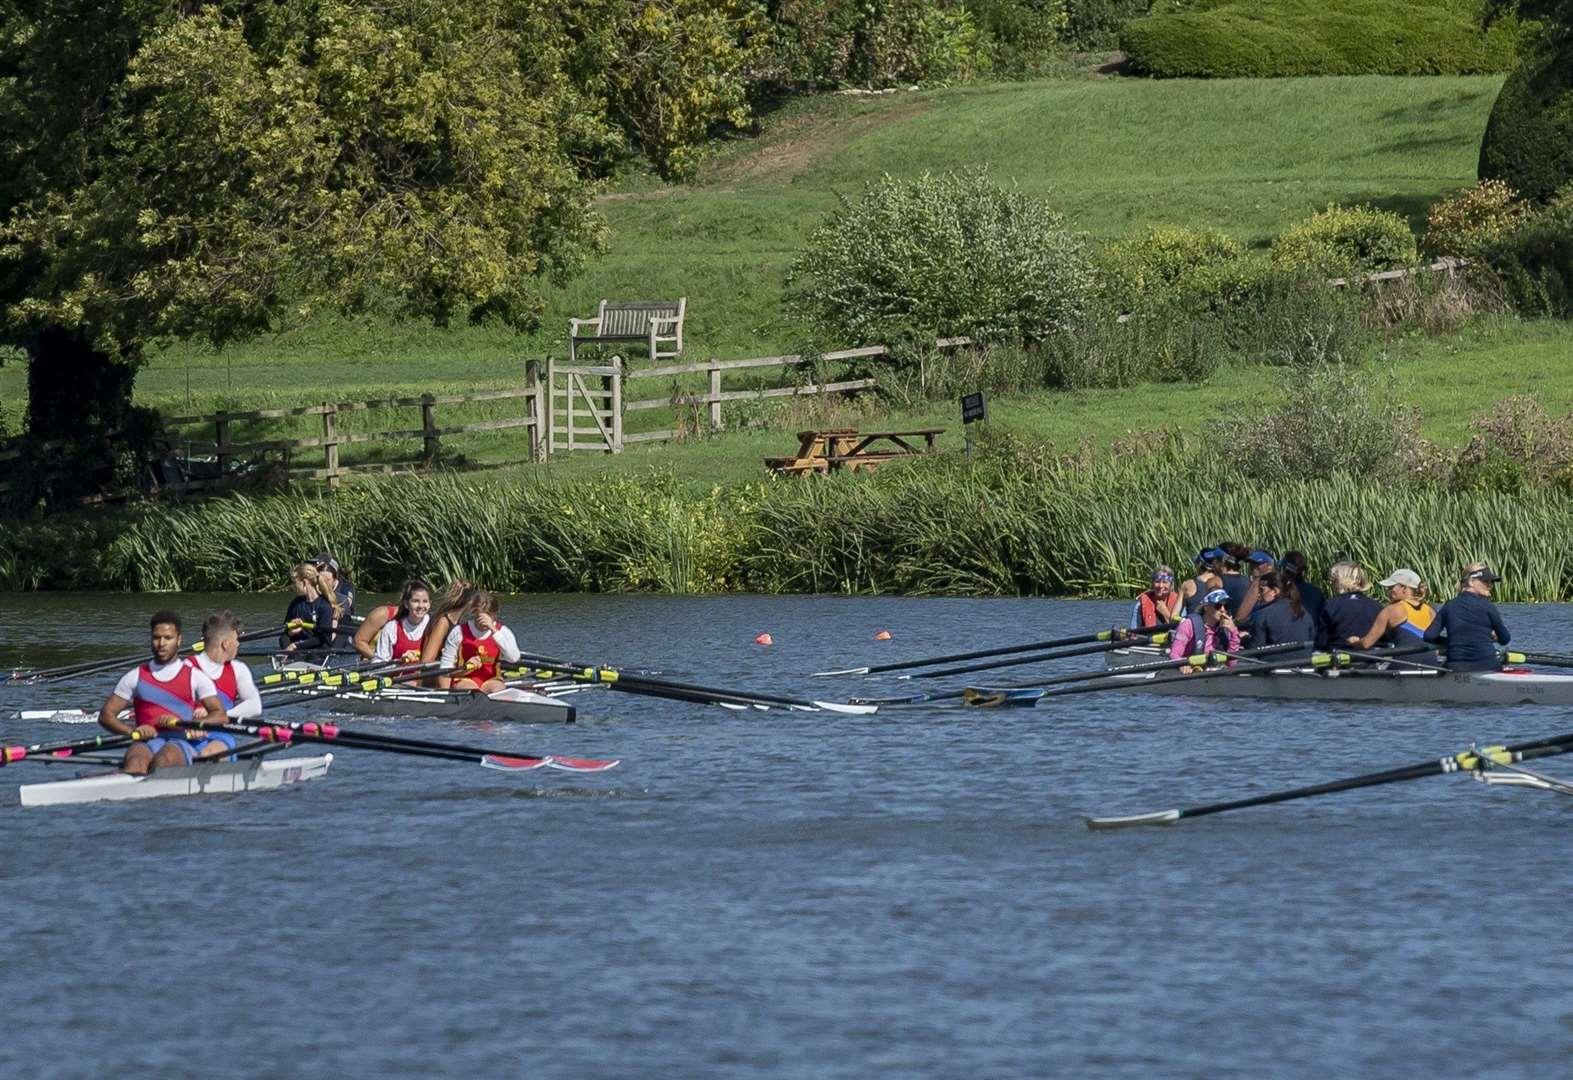 Cambridge 99 Rowing Club gets set to host Autumn Regatta